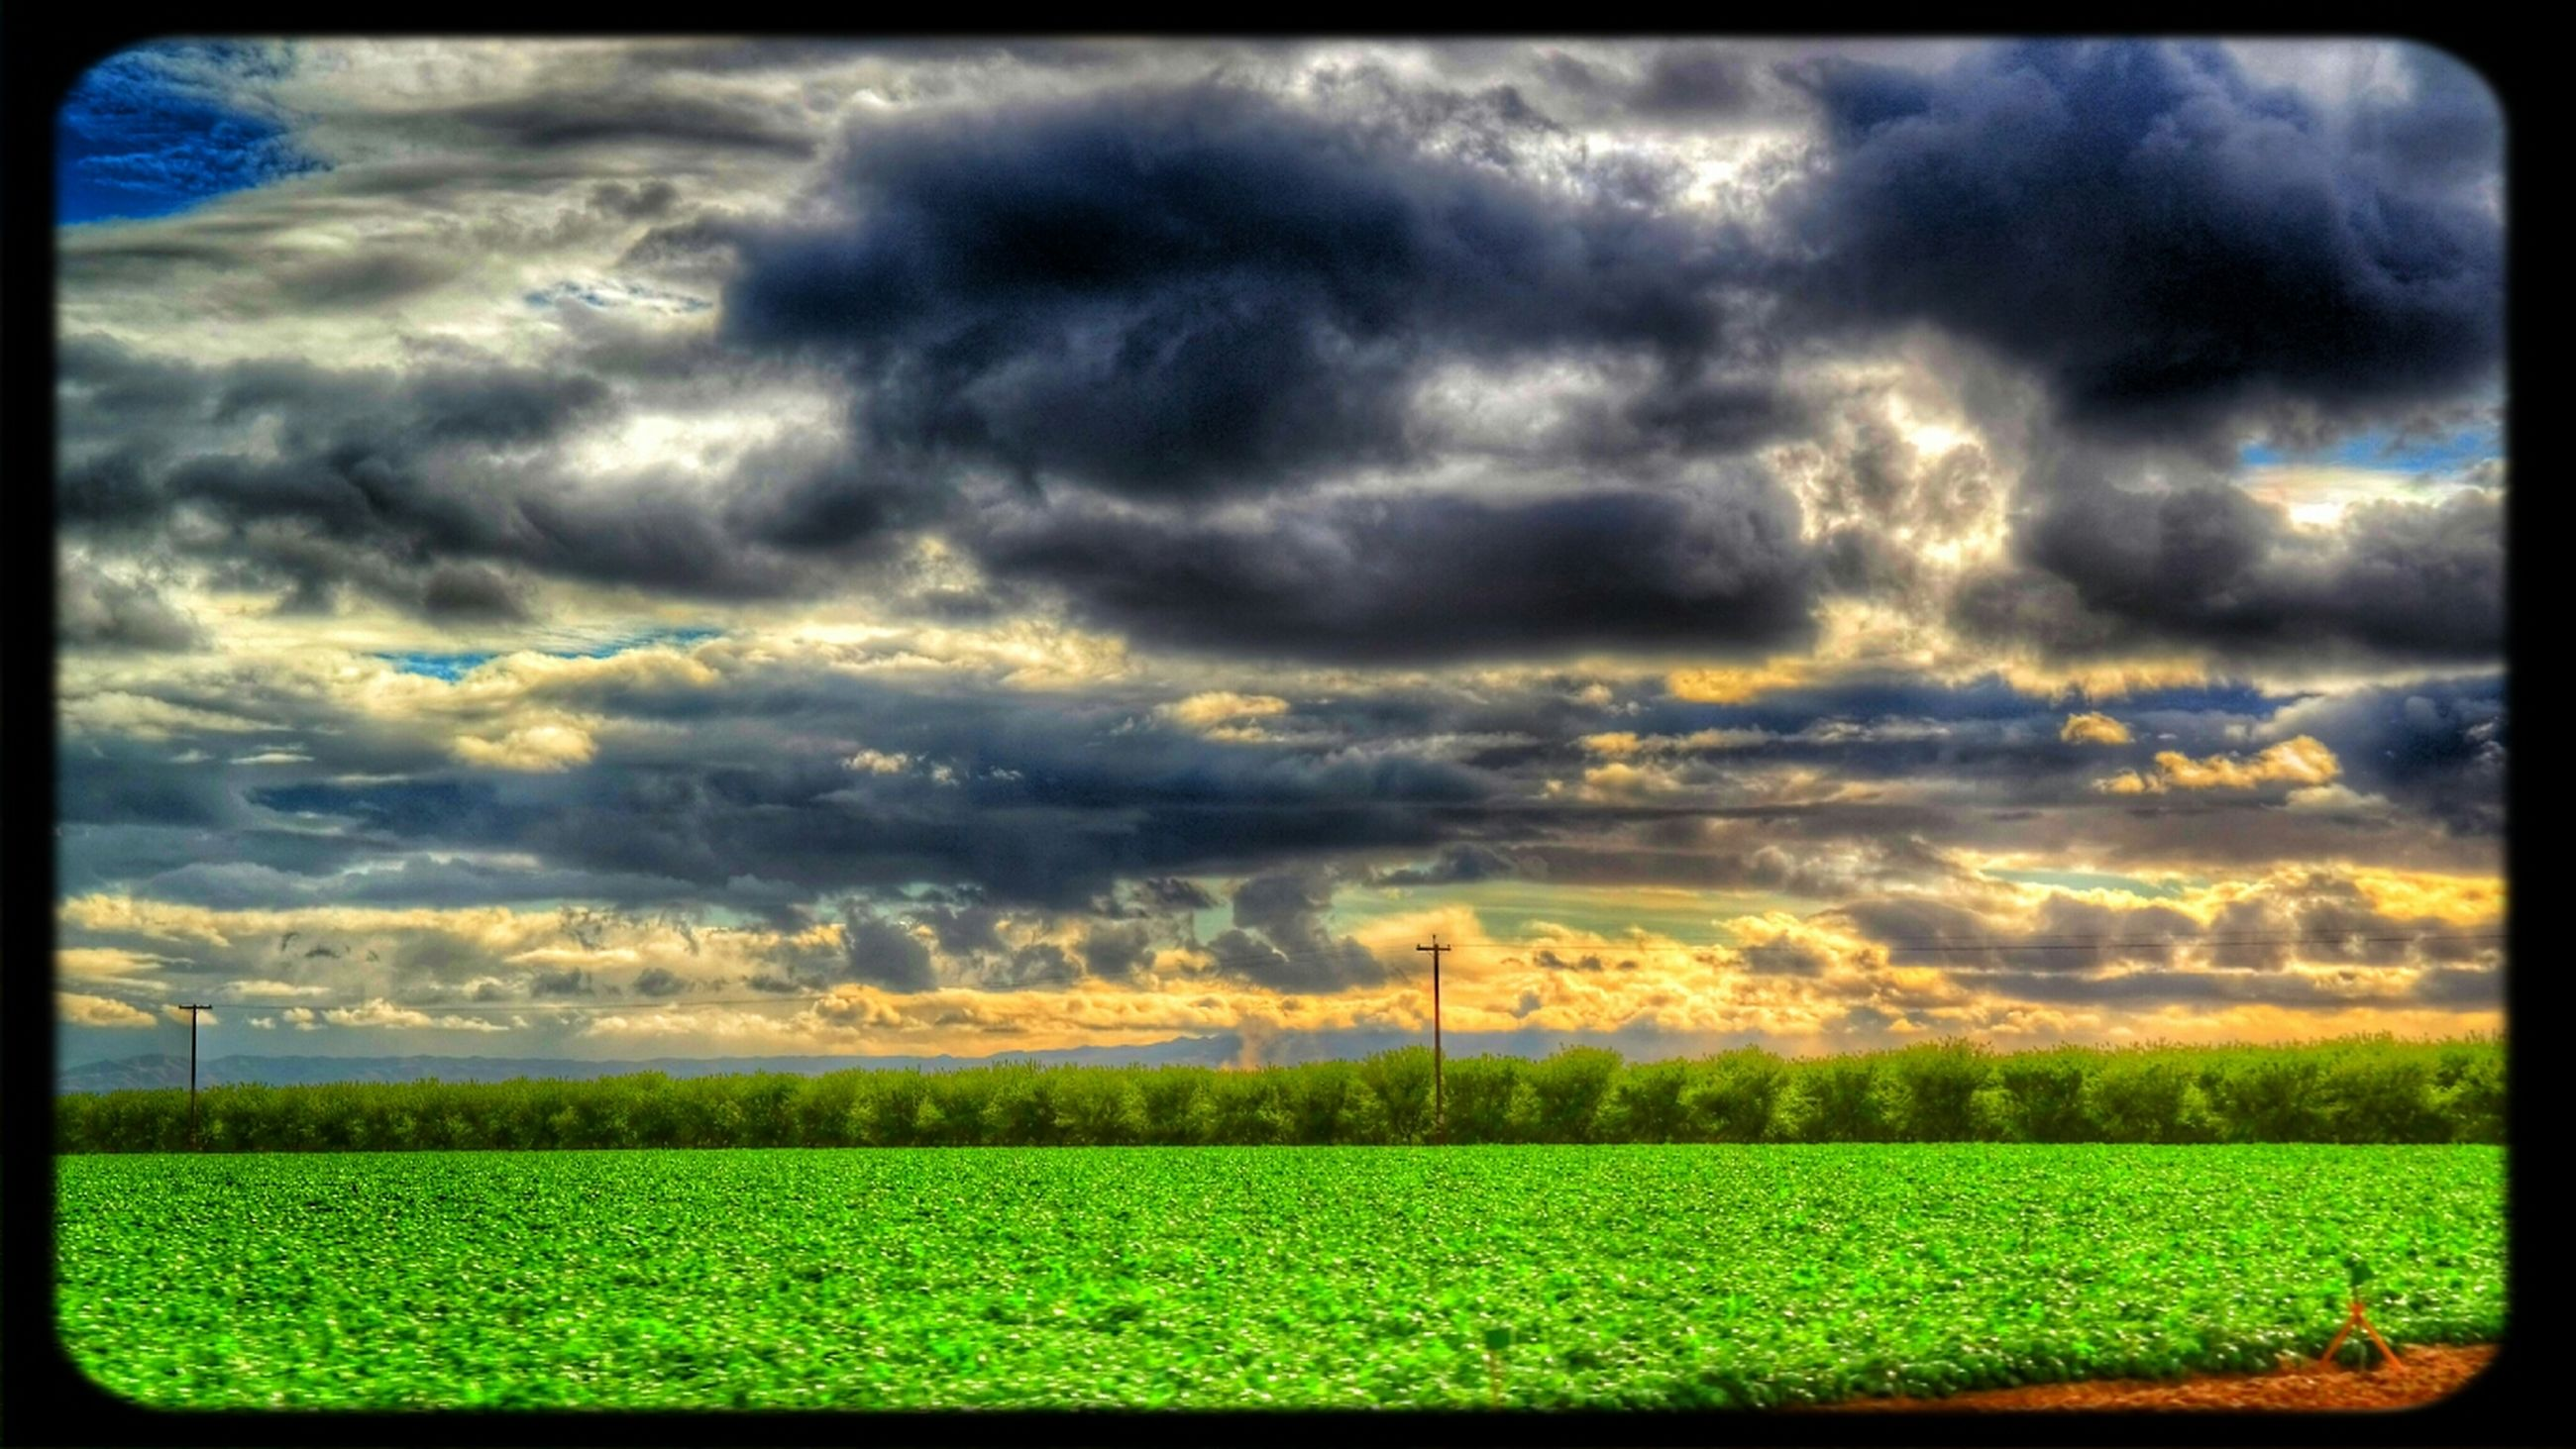 sky, cloud - sky, field, cloudy, landscape, tranquil scene, beauty in nature, tranquility, scenics, nature, grass, cloud, rural scene, growth, dramatic sky, transfer print, overcast, weather, storm cloud, auto post production filter